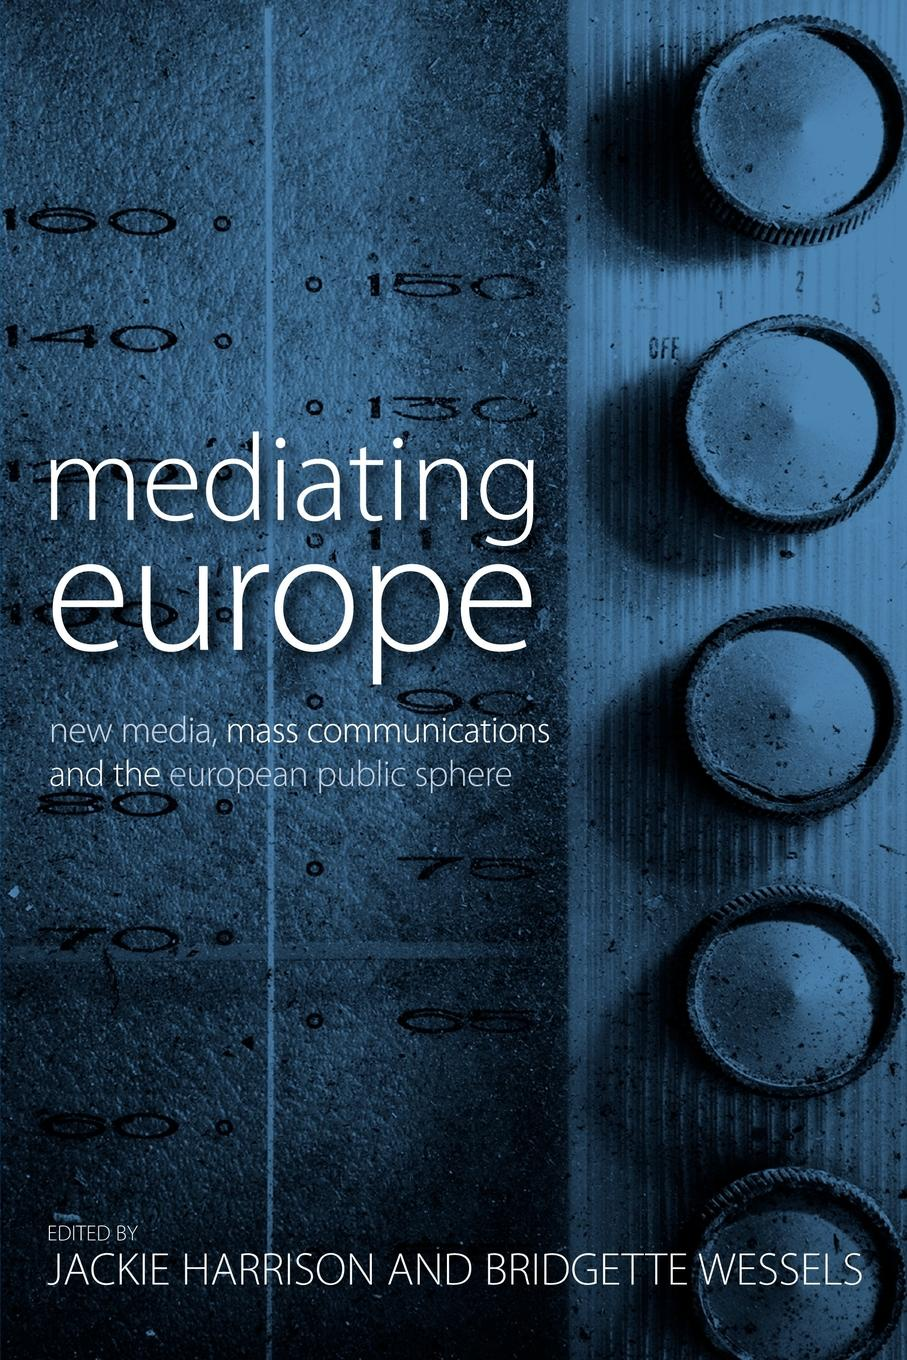 Mediating Europe. New Media, Mass Communications and the European Public Sphere